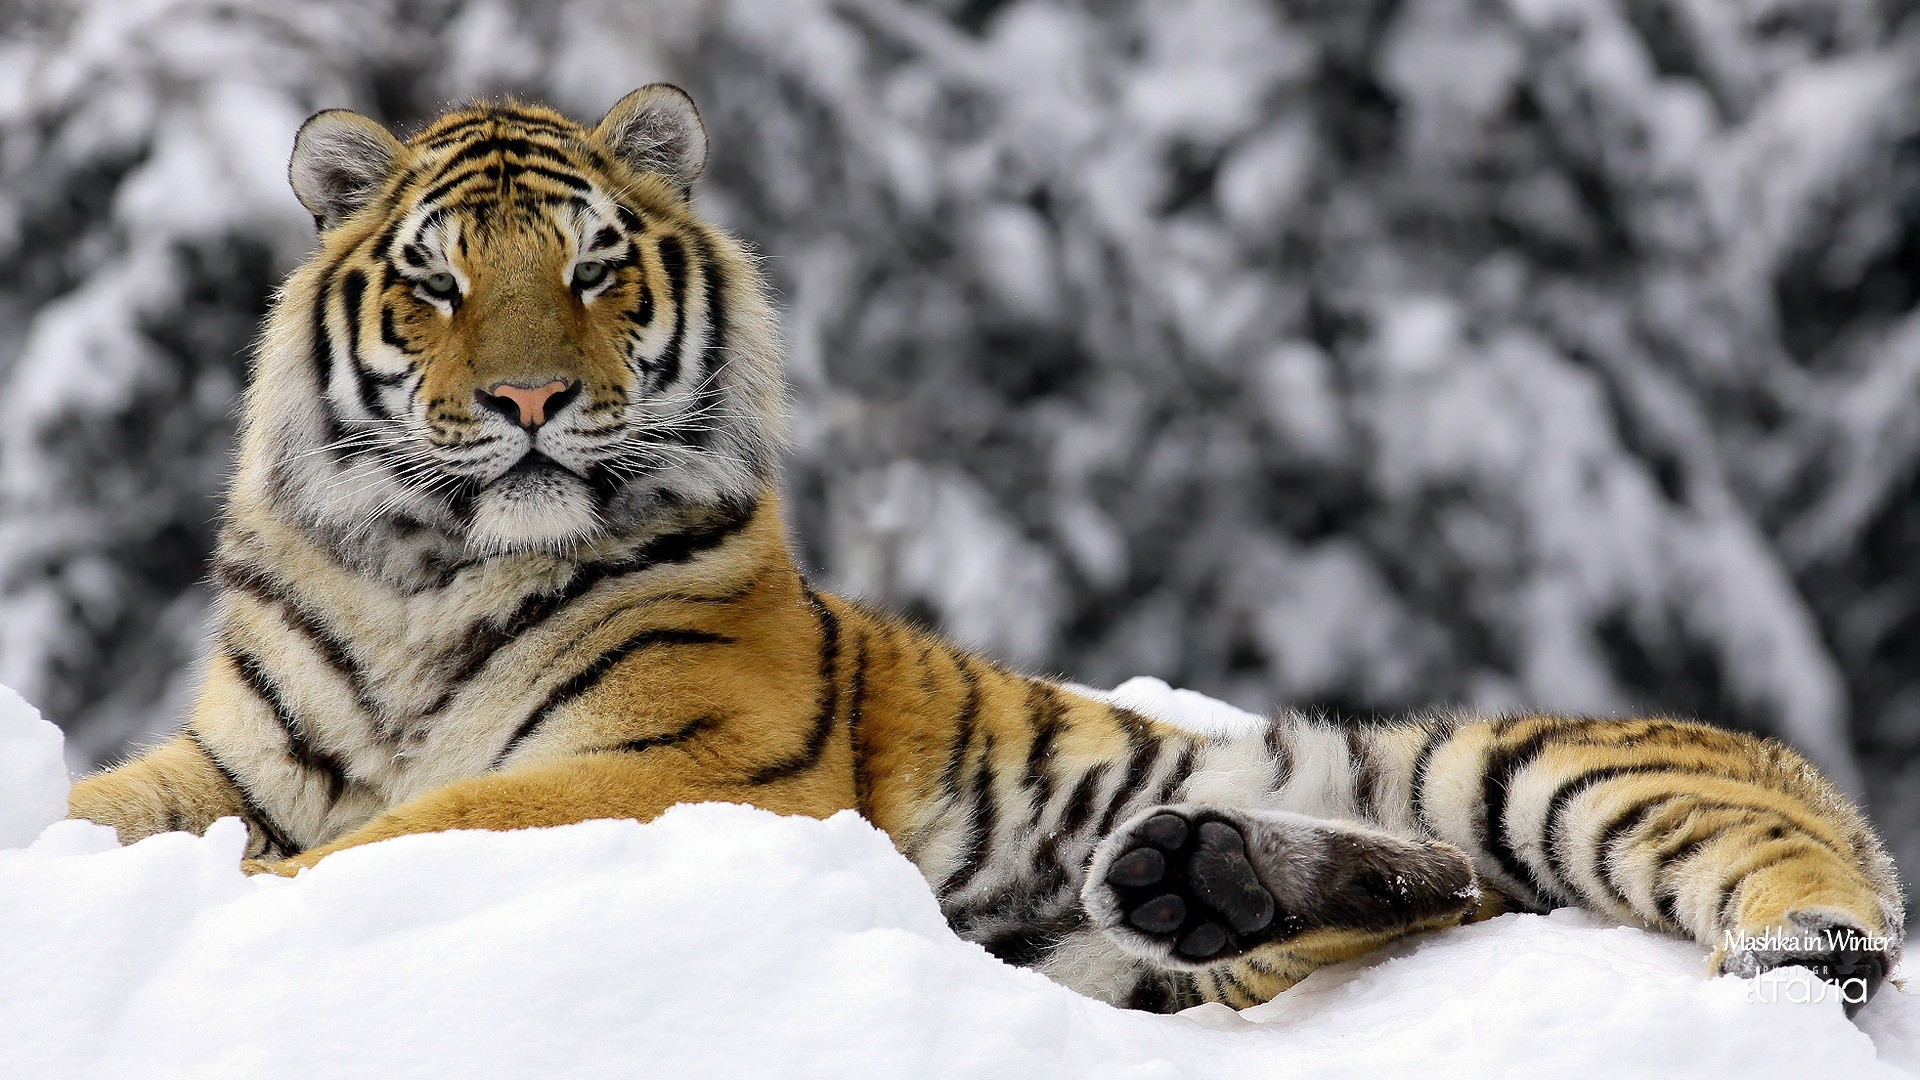 tigers panther wallpaper backgrounds ice beautiful bengal tiger 1920x1080